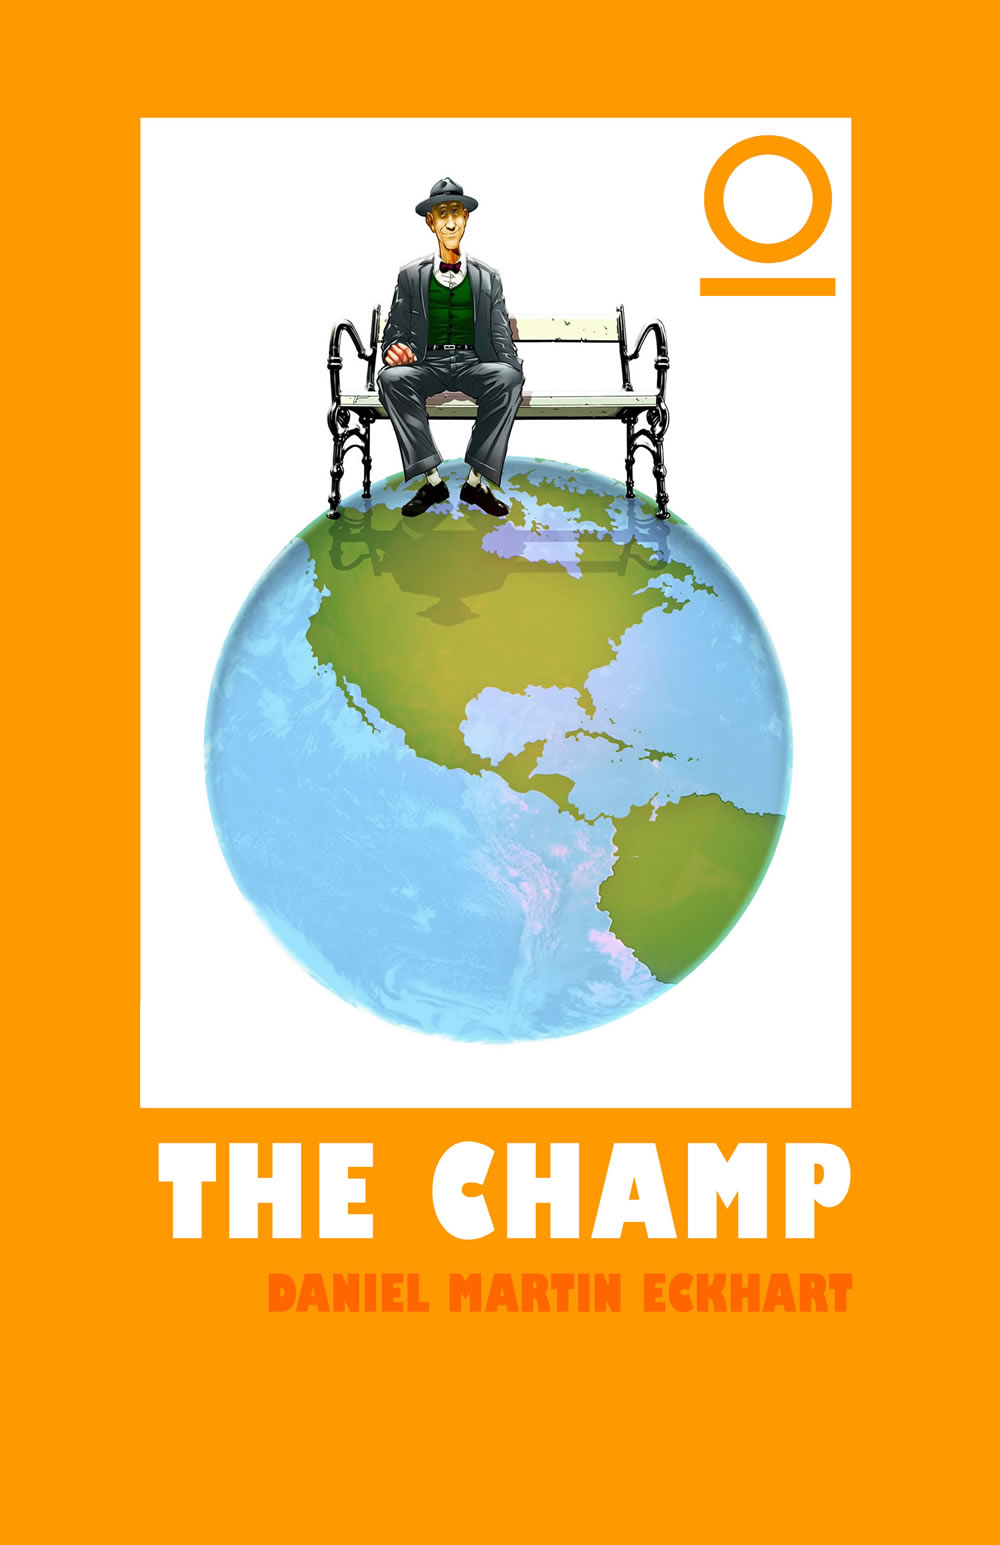 THE CHAMP  Contemporary, 318 pages Amazon KDP, May 2012   This is the story of Wilber Patorkin. At the tender age of one hundred and fifteen he's the oldest man alive in the United States of America. His body is failing him gloriously, his legs will barely carry him, his quivering lips and dentures turn his words into meaningless babble... and yet he has the clearest brain and the brightest eyes you'll ever come across. His steps may be tiny, but his story is epic. His words may be few, but his mind goes beyond your wildest imagination. Join Wilber on a most unlikely journey and be prepared - you just may discover yourself along the way.